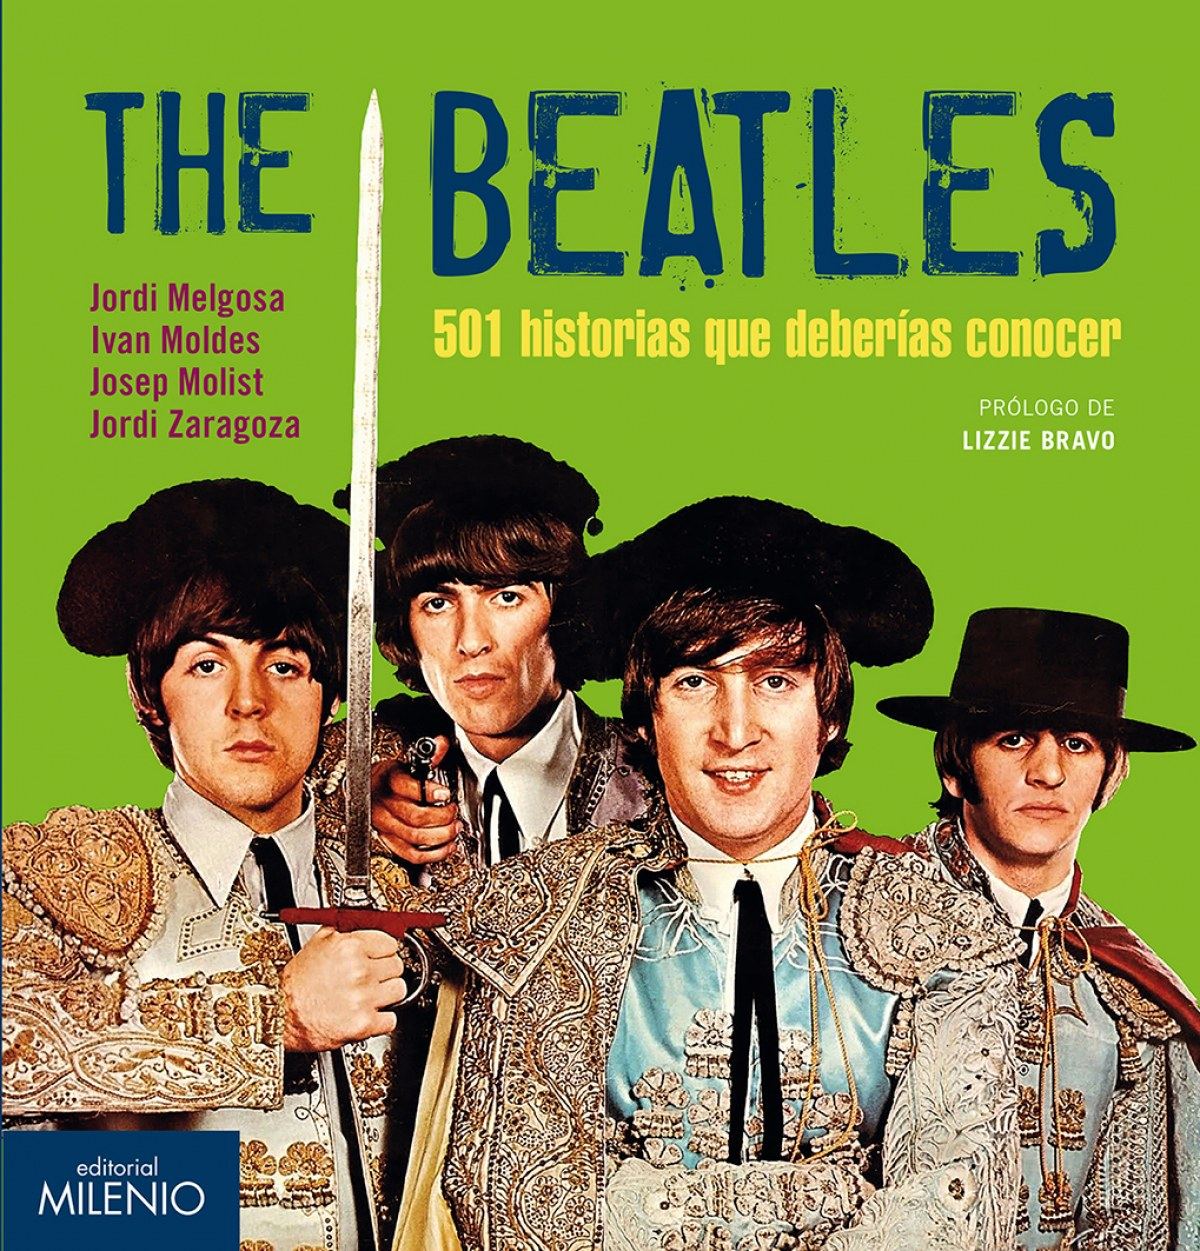 THE BEATLES.501 HISTORIAS QUE DEBERIAS CONOCER